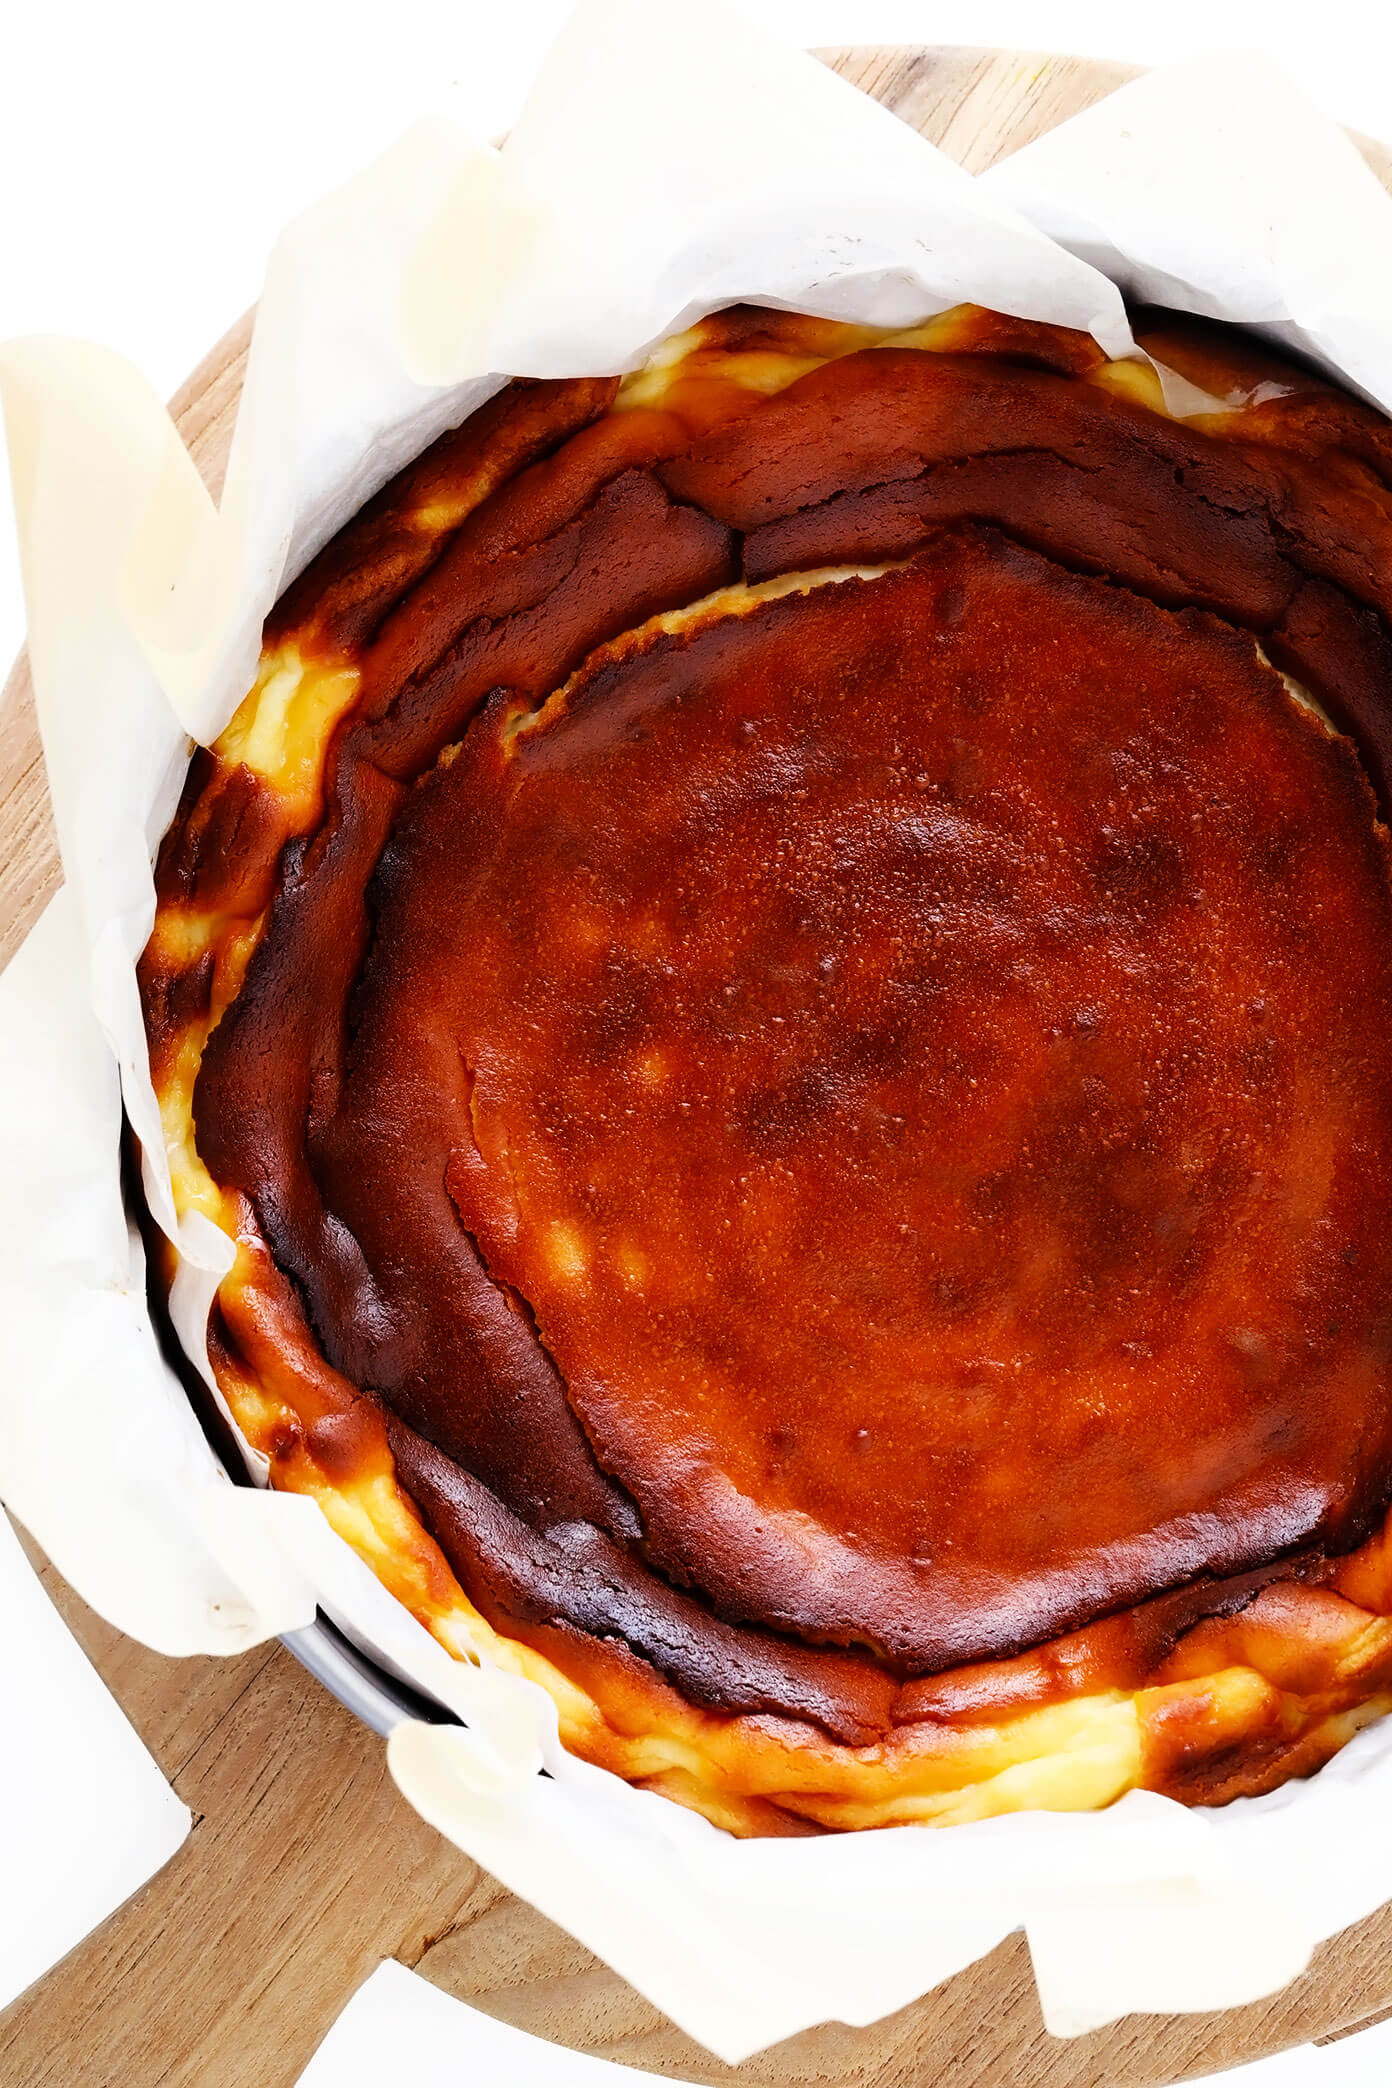 Basque Cheesecake Recipe in Springform Pan